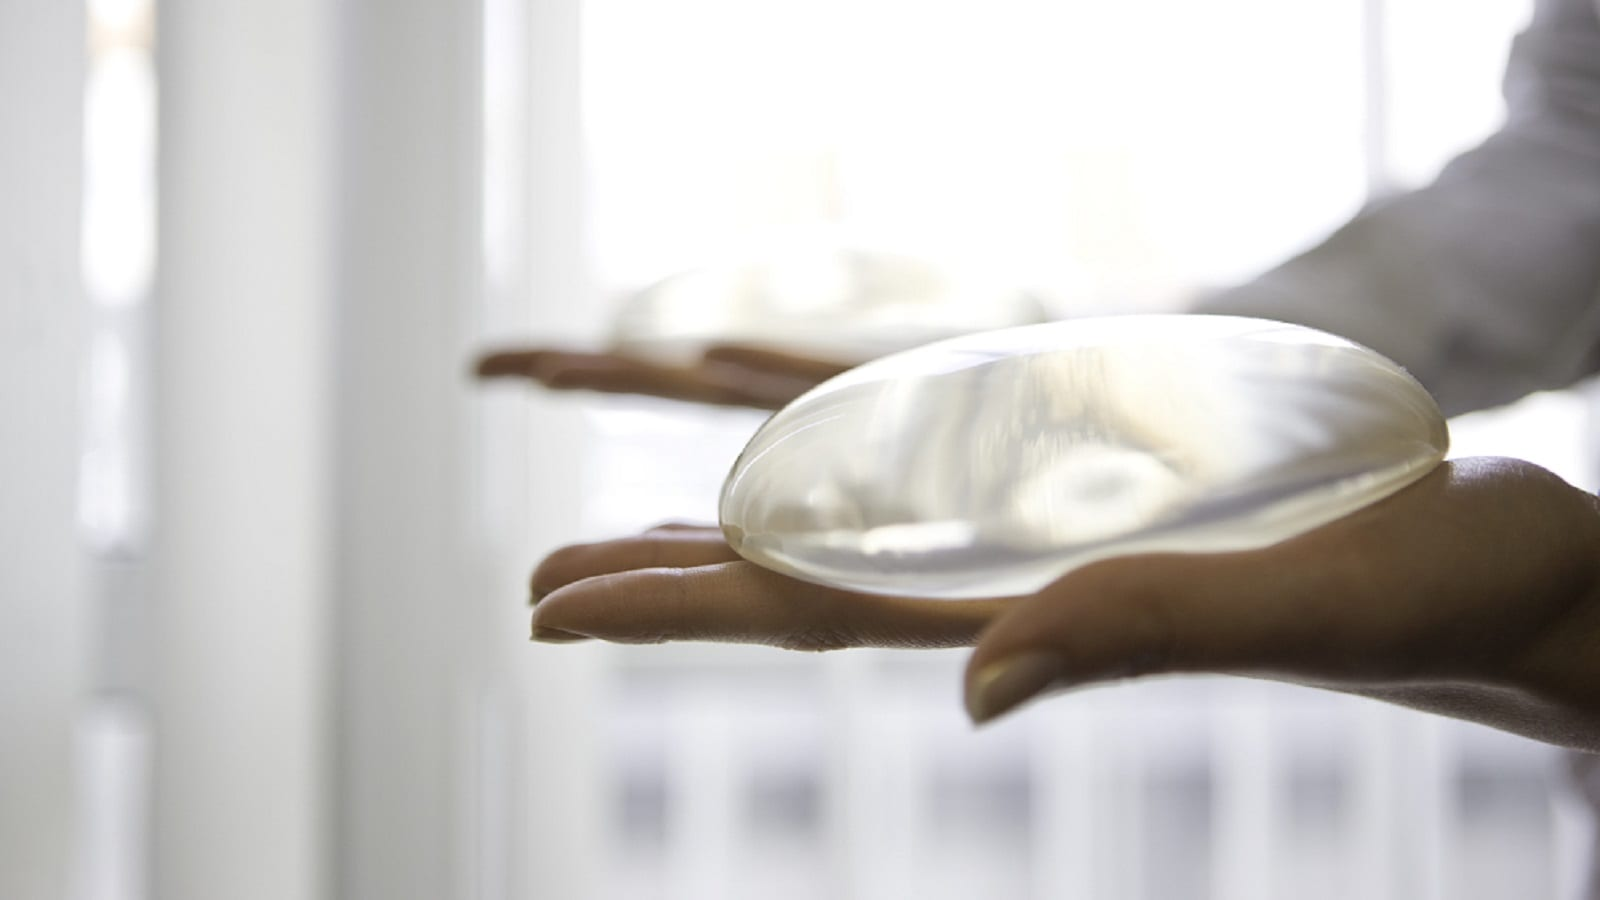 Surgeon Holding Two Breast Implants